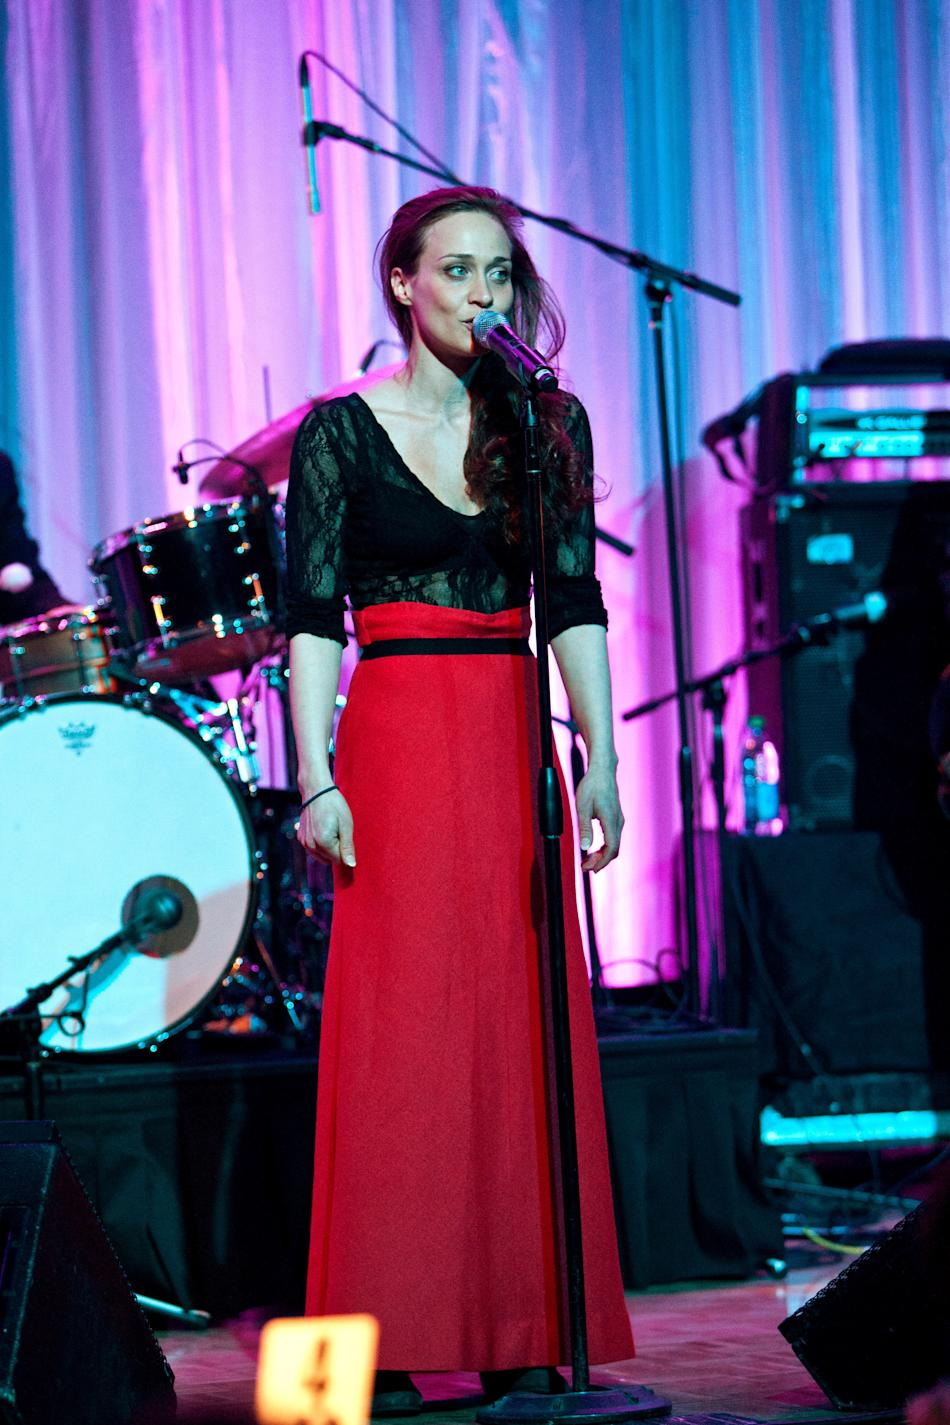 Fiona arrived back on the radar with a performance last February in Beverley Hills wearing a sexy lace top tucked into a belted floor-length crimson skirt, haunting and beautiful as ever. (Michael Bez